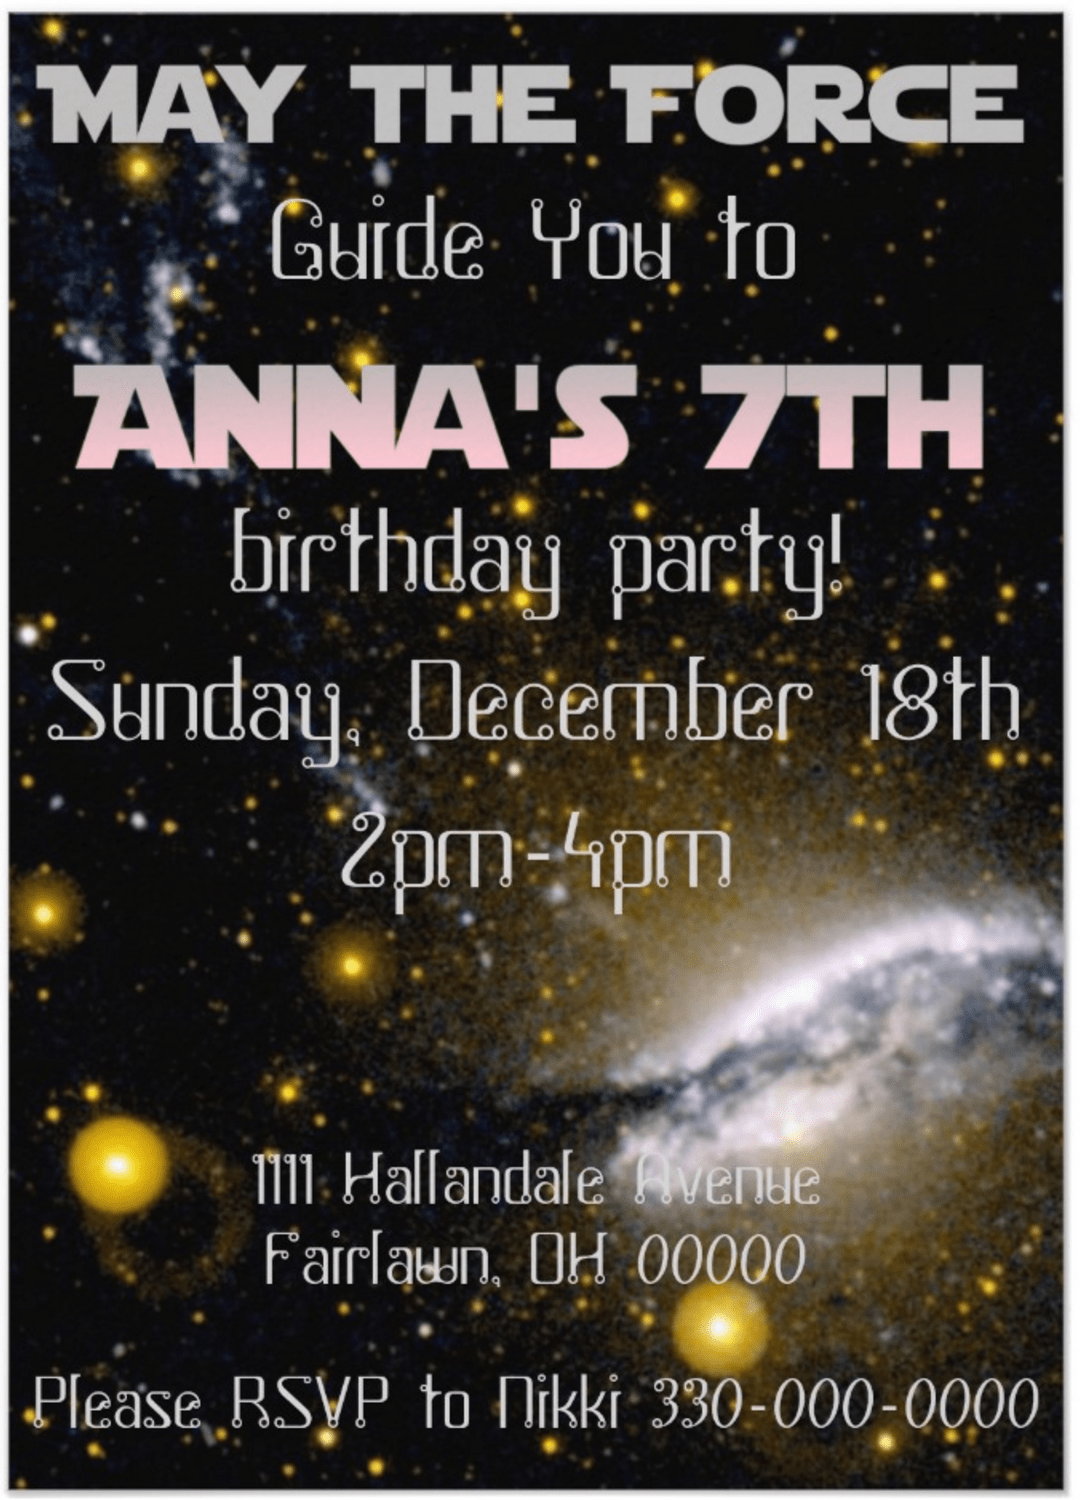 Star Wars party ideas and invitations